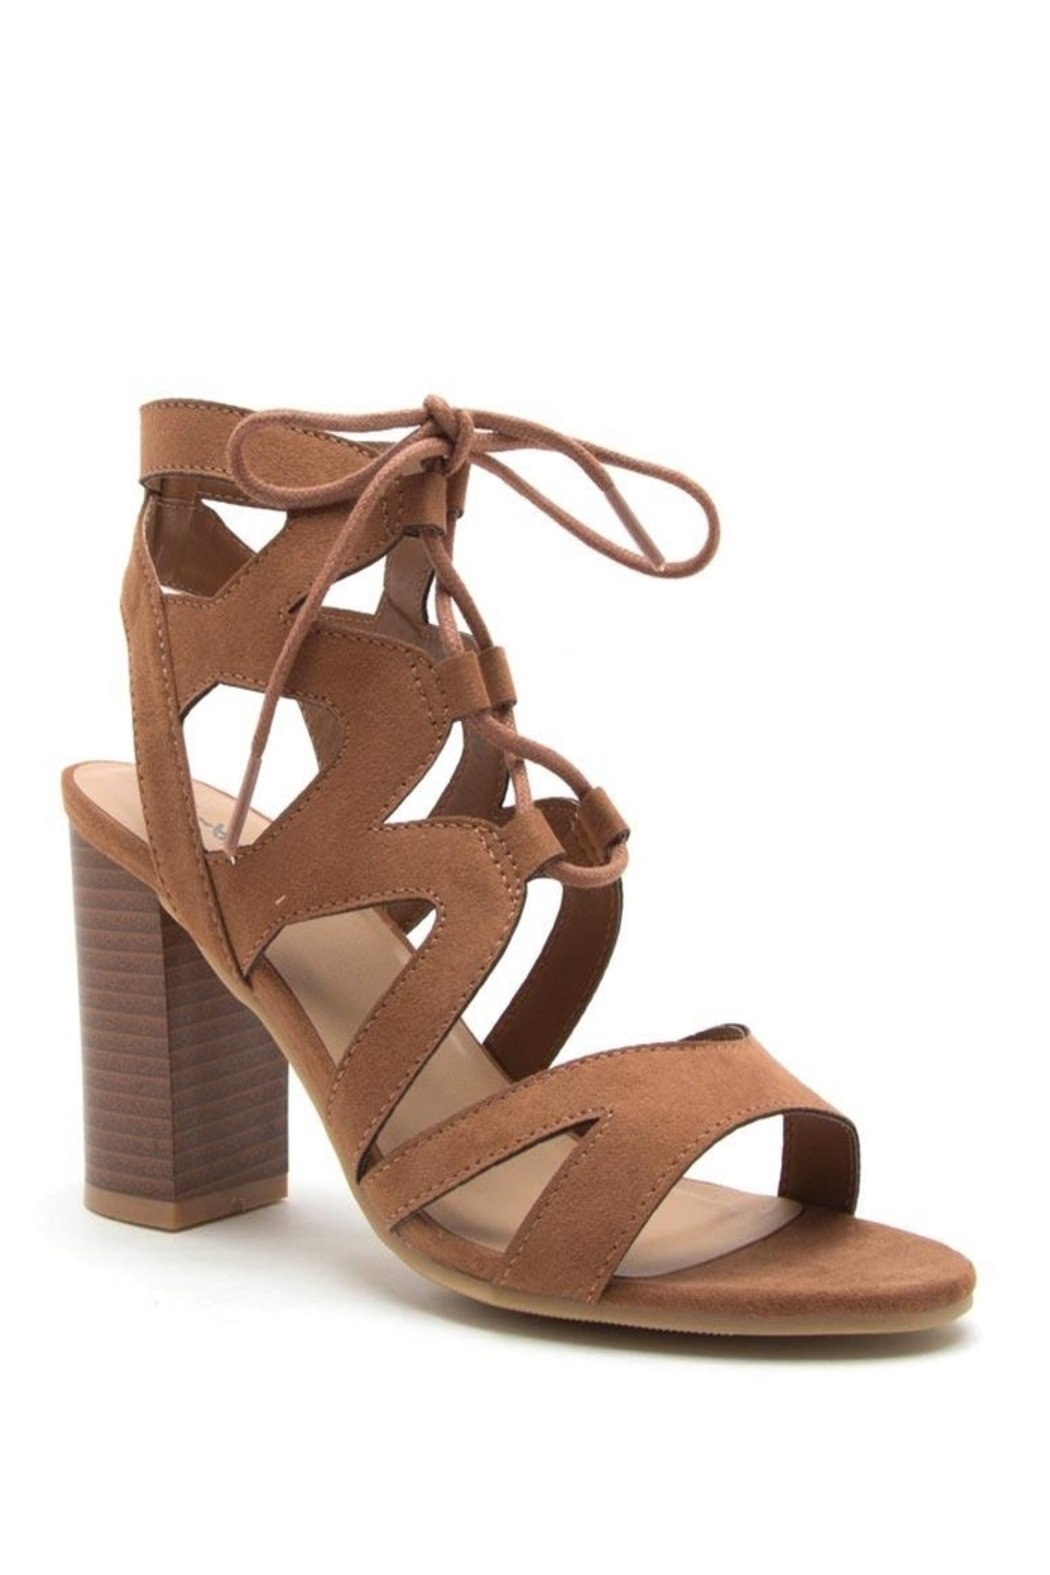 daf1e044b4a Qupid Strappy Sandals from Orlando by Zingara Souls — Shoptiques